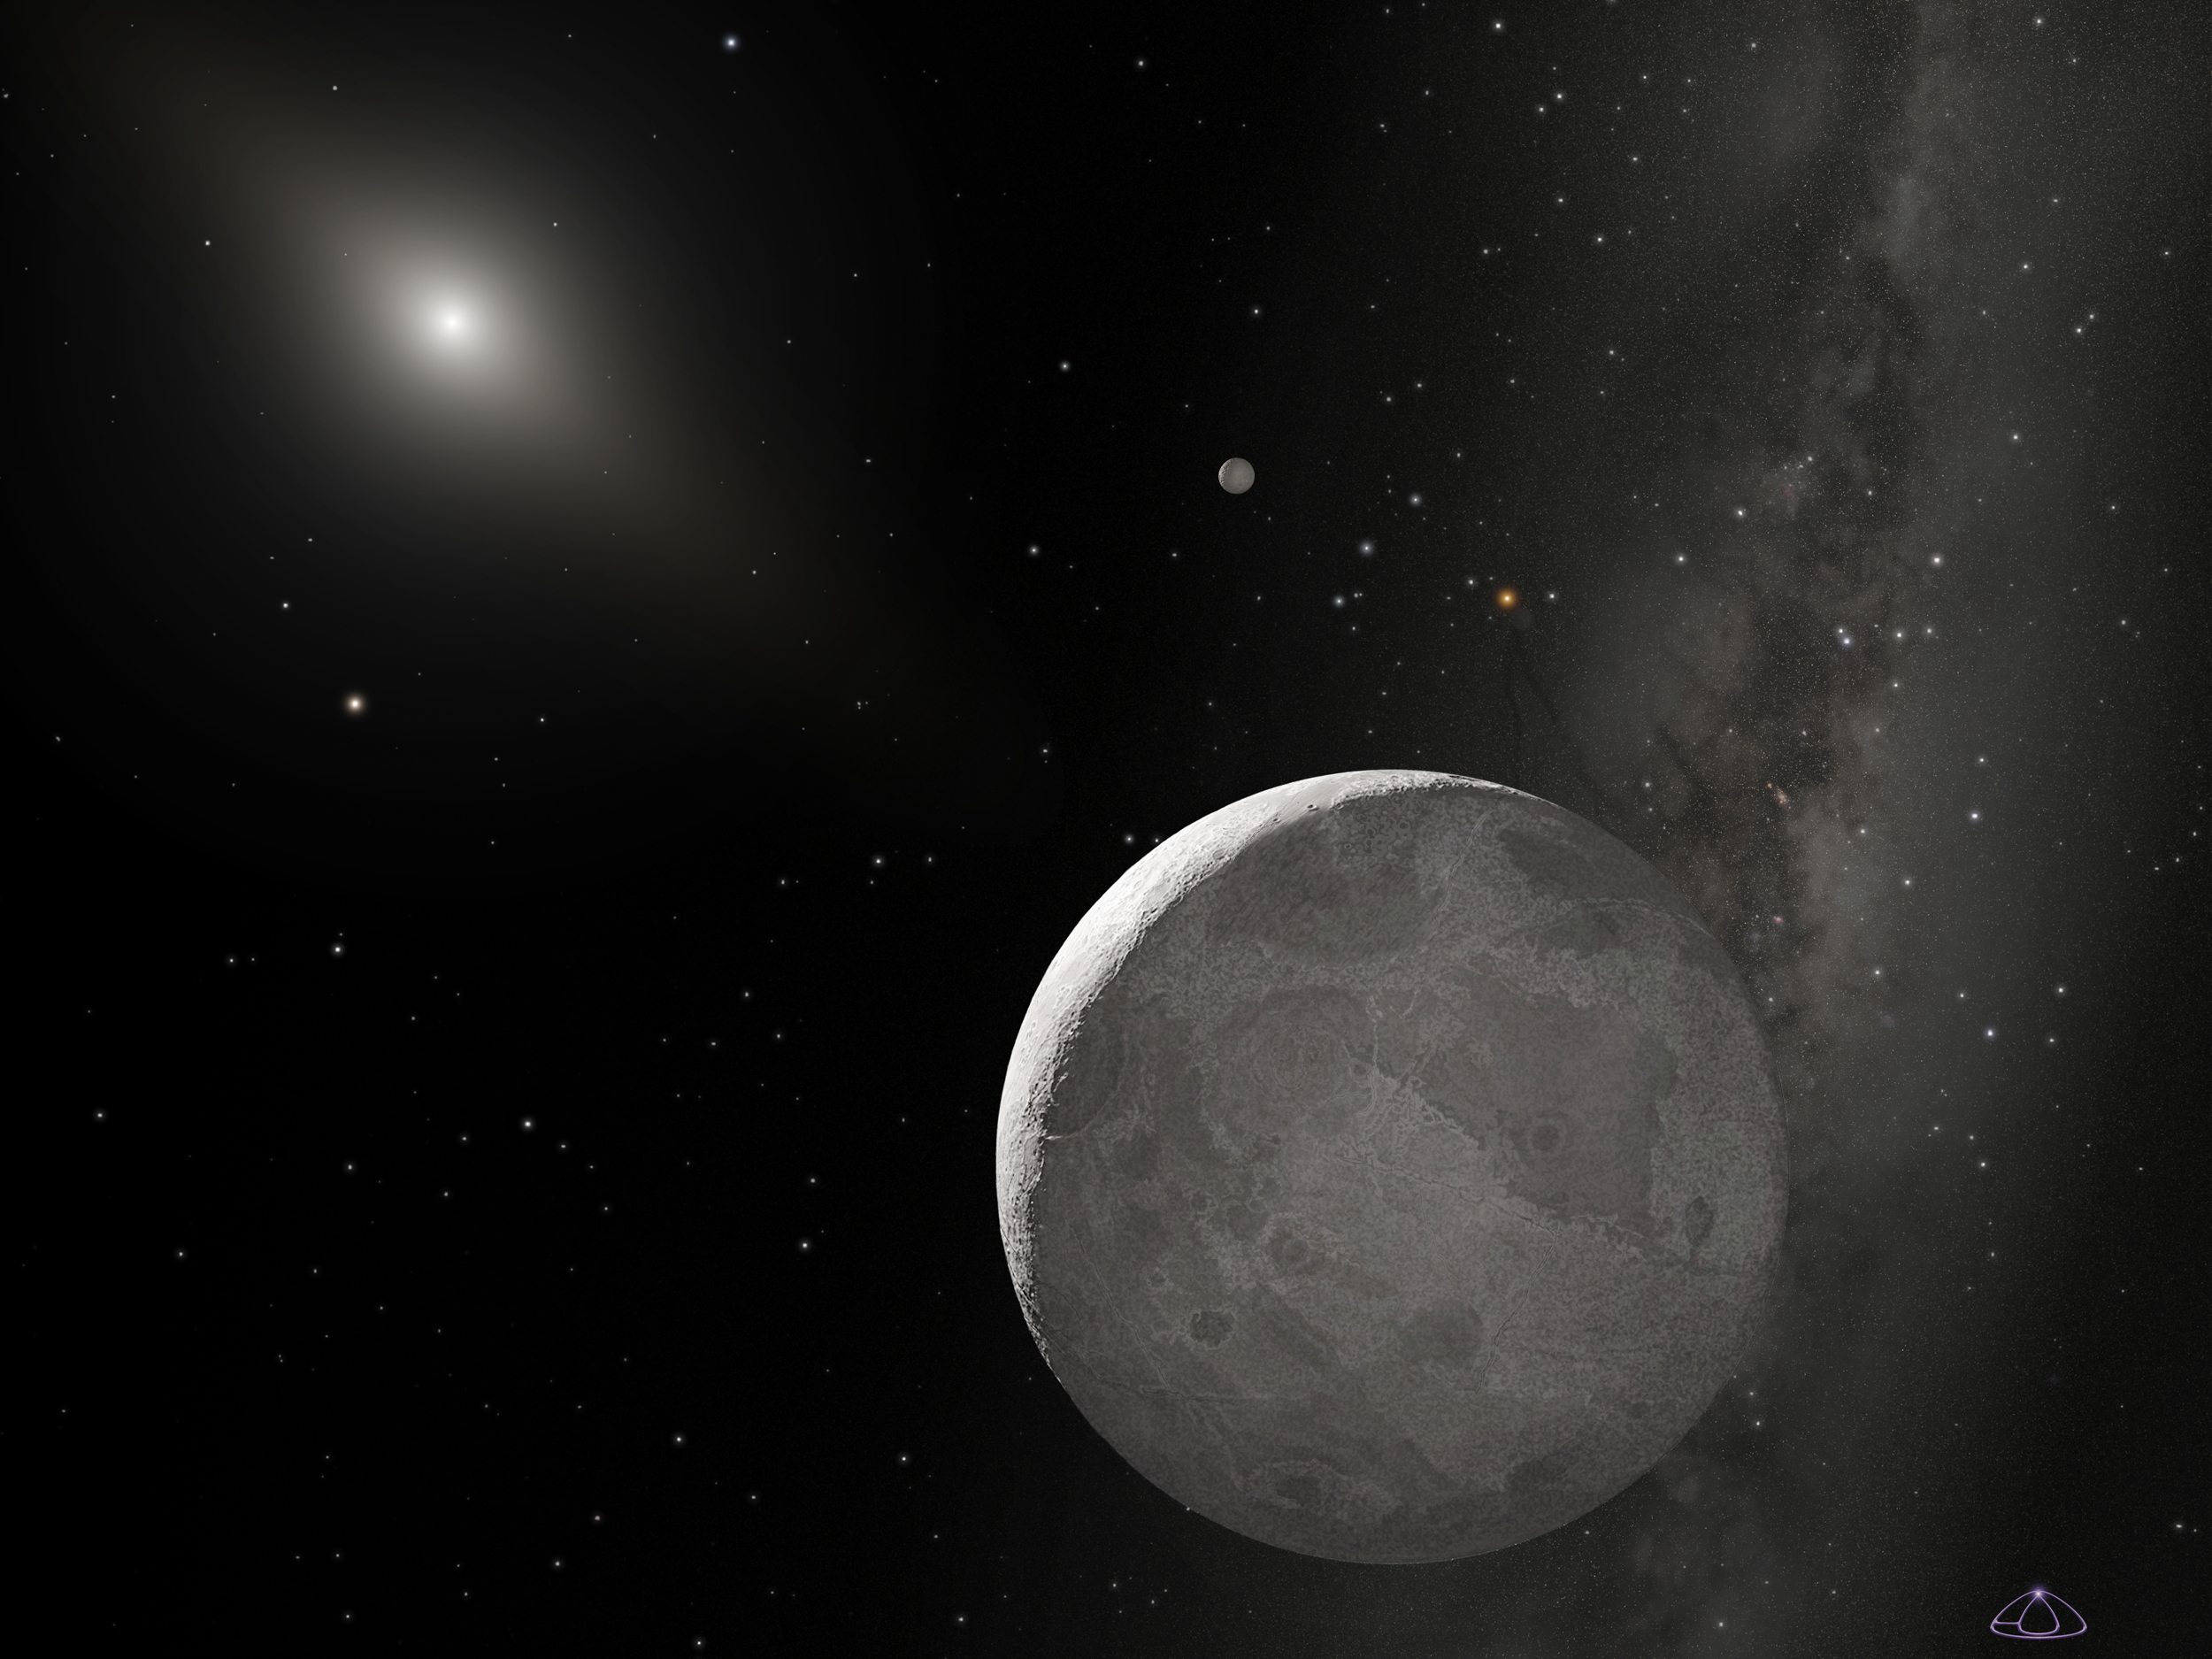 NASA - Hubble Finds 'Tenth Planet' Slightly Larger Than Pluto